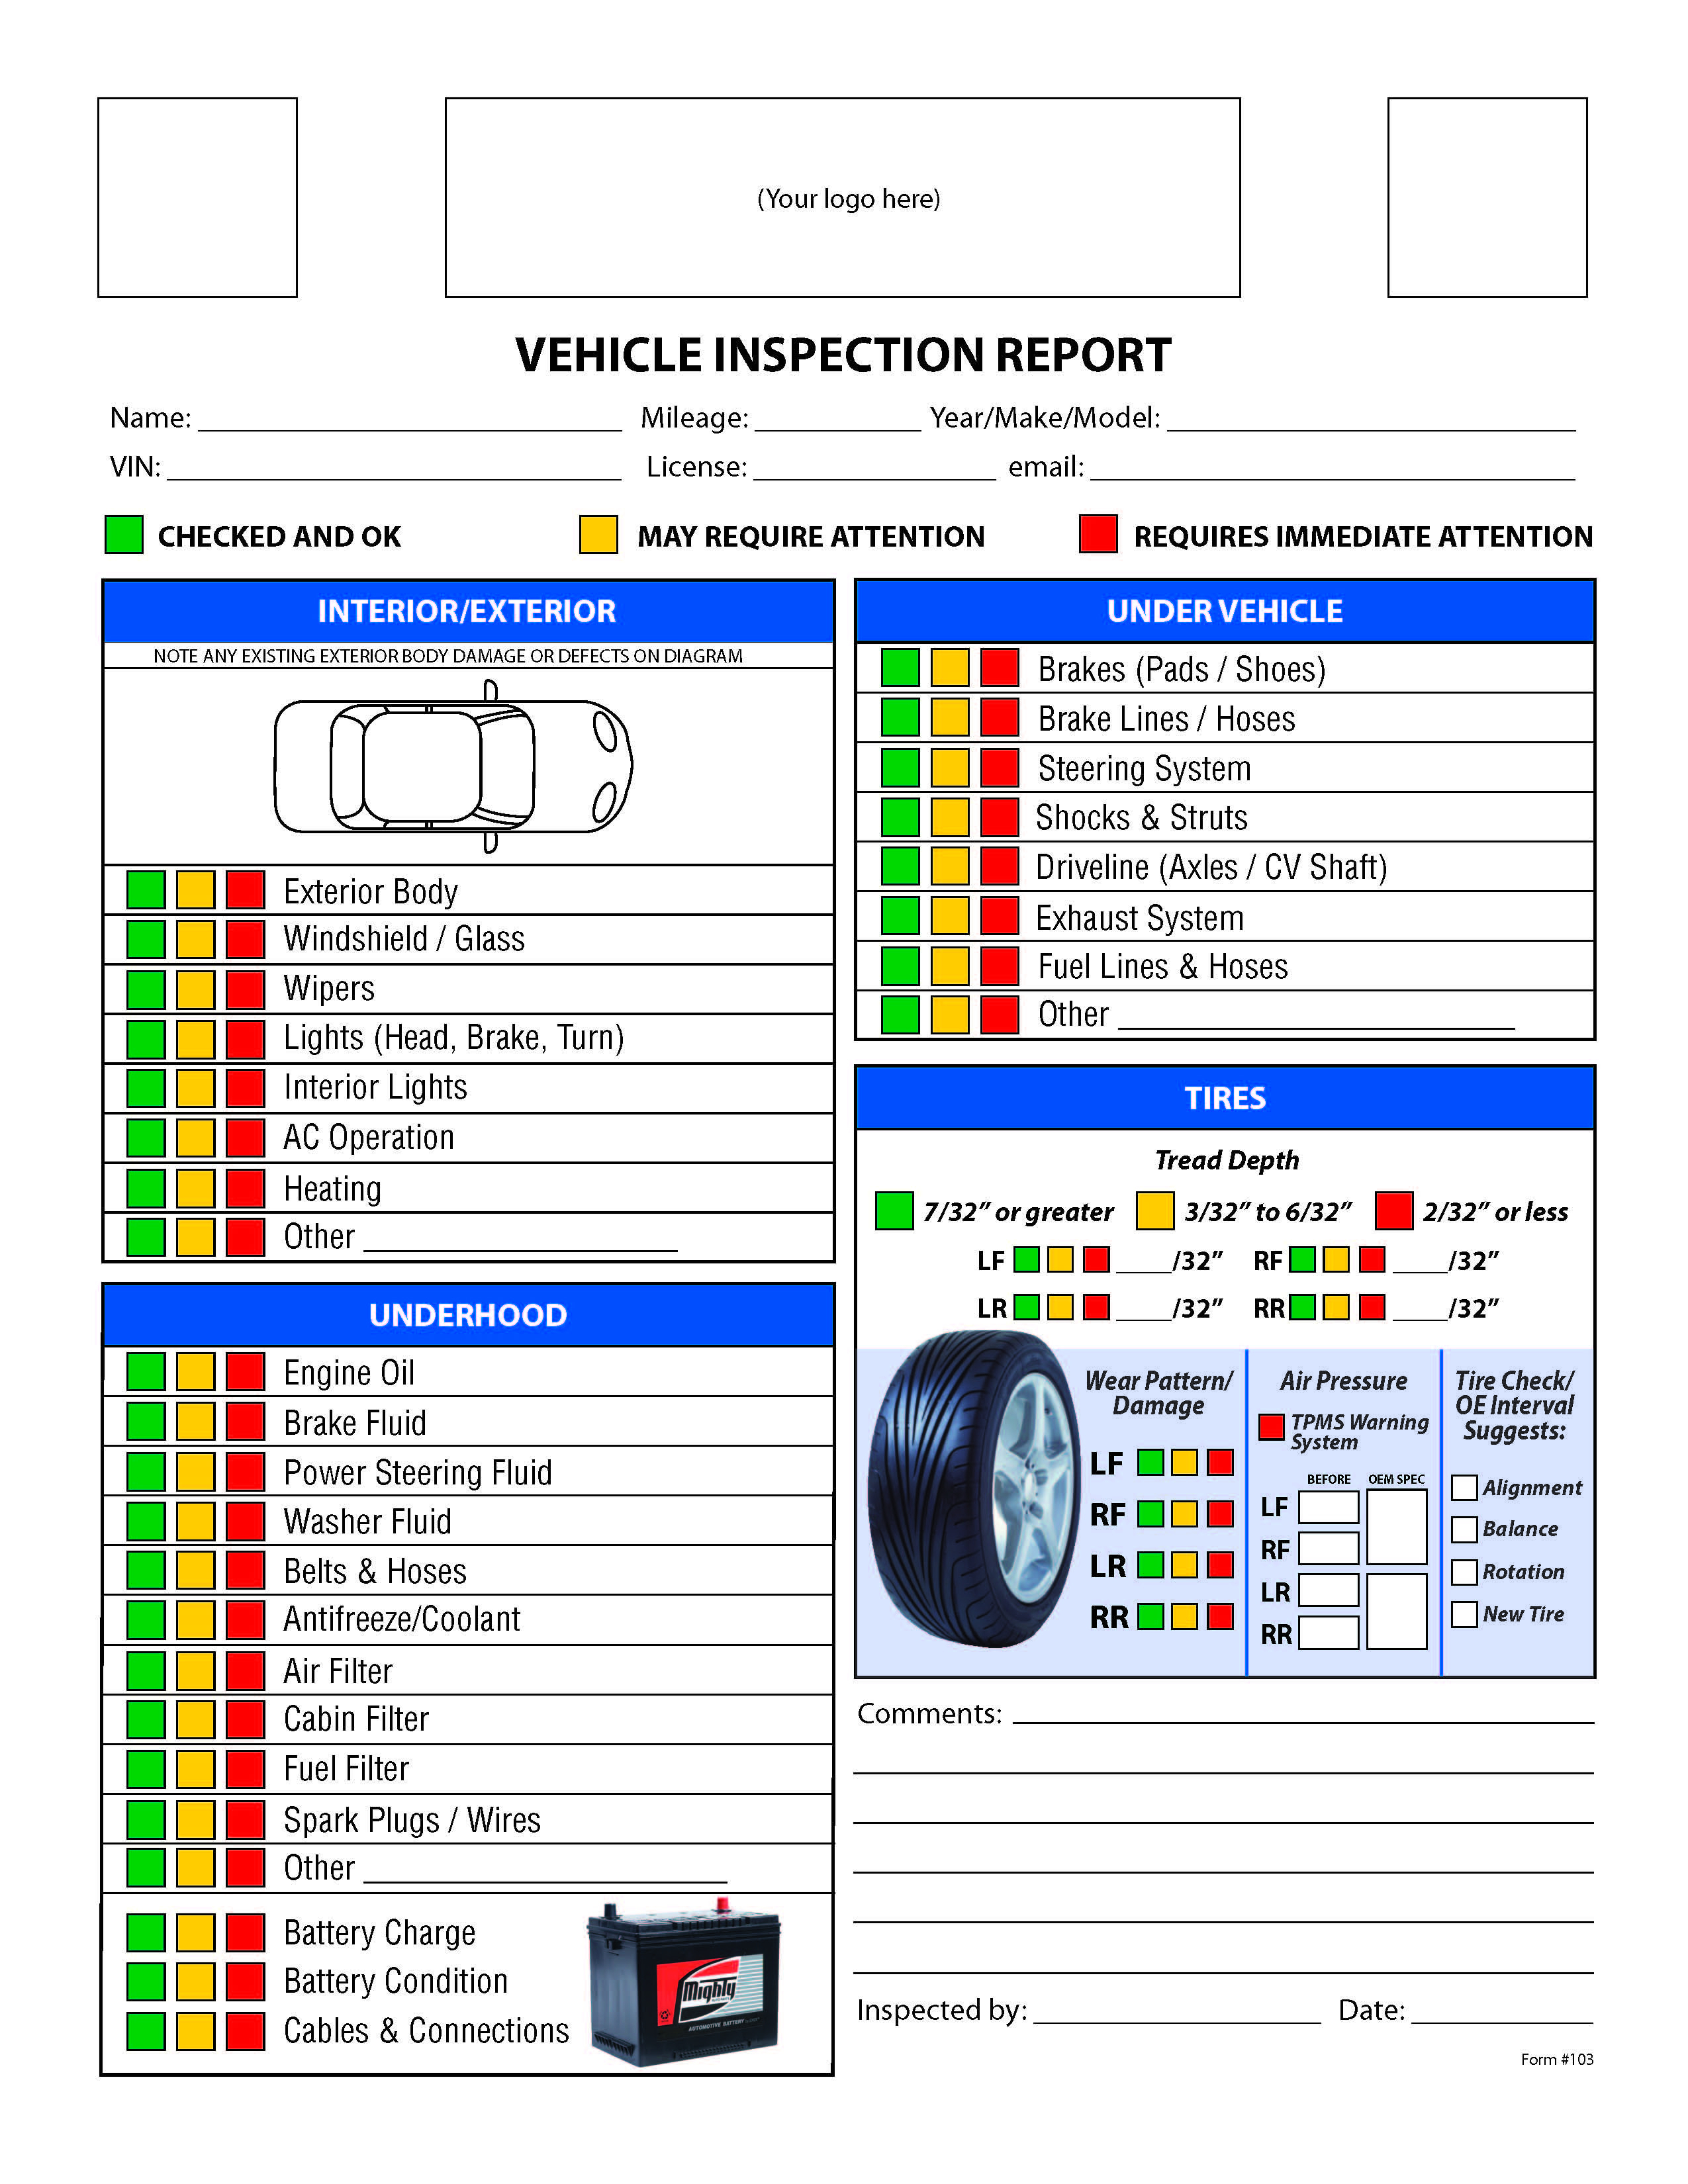 Free Vehicle Inspection Checklist Form | Good To Know Within Vehicle Checklist Template Word